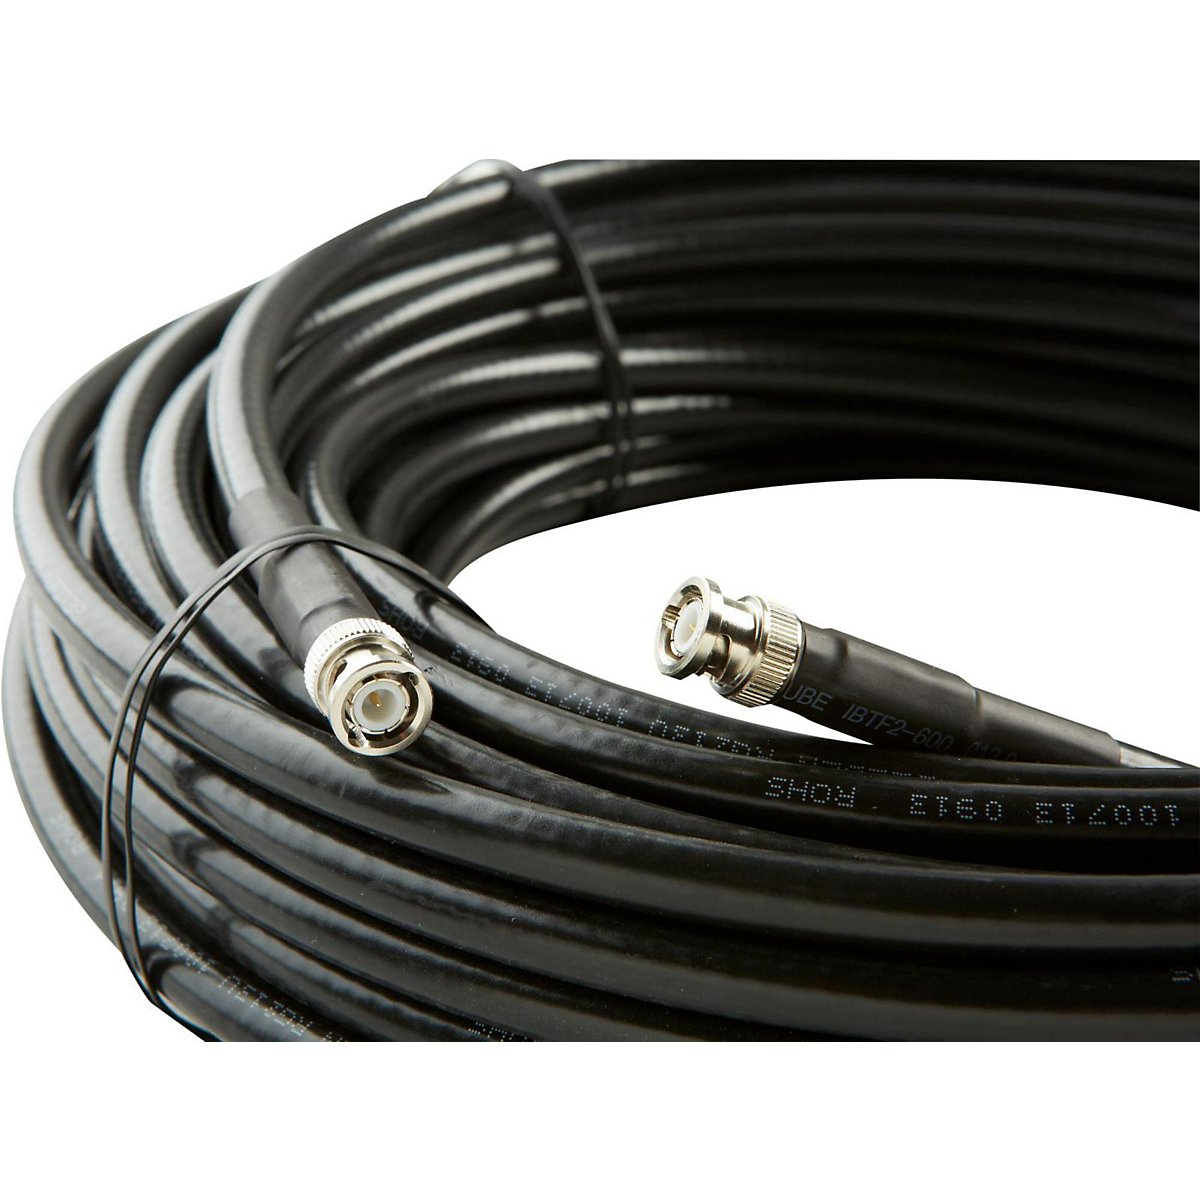 Amazon.com: Shure UA8100 100-Feet UHF Remote Antenna Extension Cable: Musical Instruments